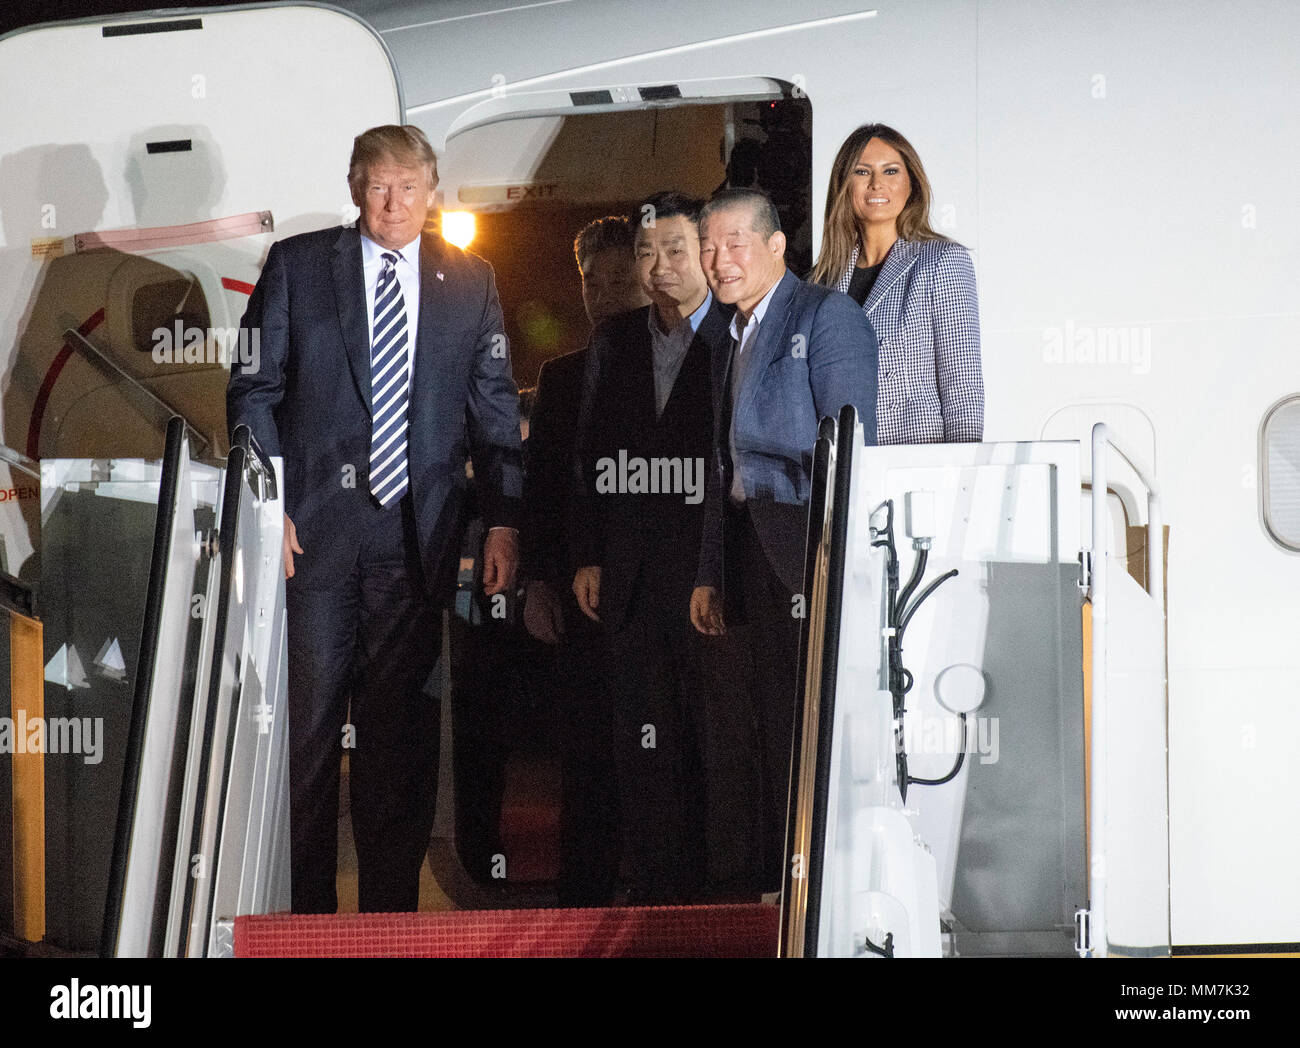 Joint Base Andrews, Maryland, USA. 10th May, 2018. United States President Donald J. Trump welcomes Kim Dong Chul, Kim Hak Song and Tony Kim back to the US at Joint Base Andrews in Maryland on Thursday, May 10, 2018. The three men were imprisoned in North Korea for periods ranging from one and two years. Credit: dpa picture alliance/Alamy Live News Stock Photo